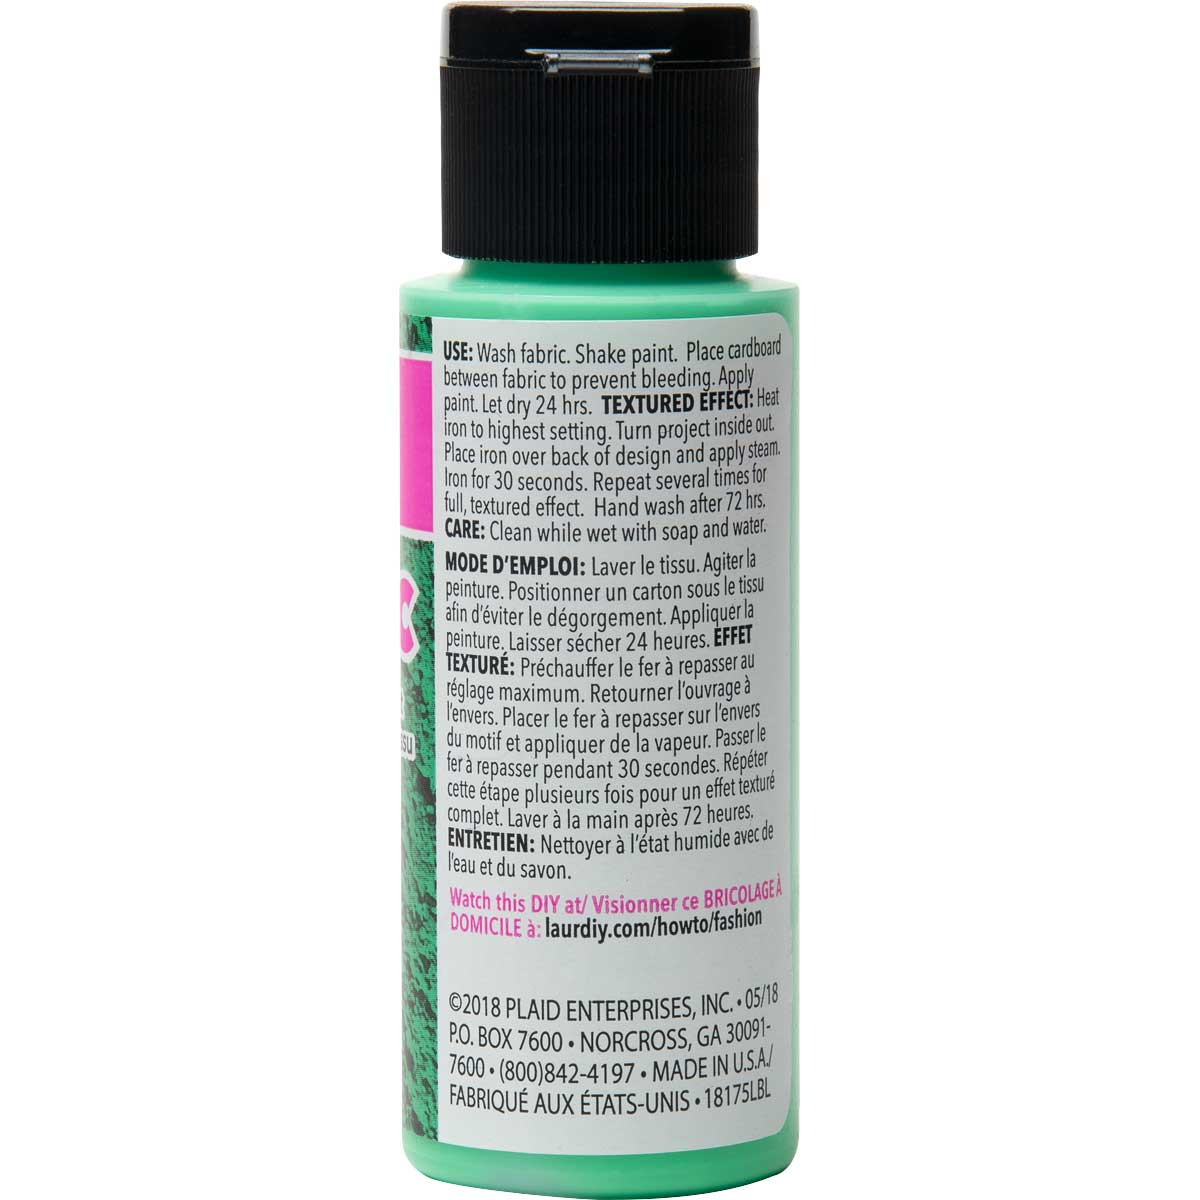 LaurDIY ® Texturific™ Fabric Paint - Everest, 2 oz.